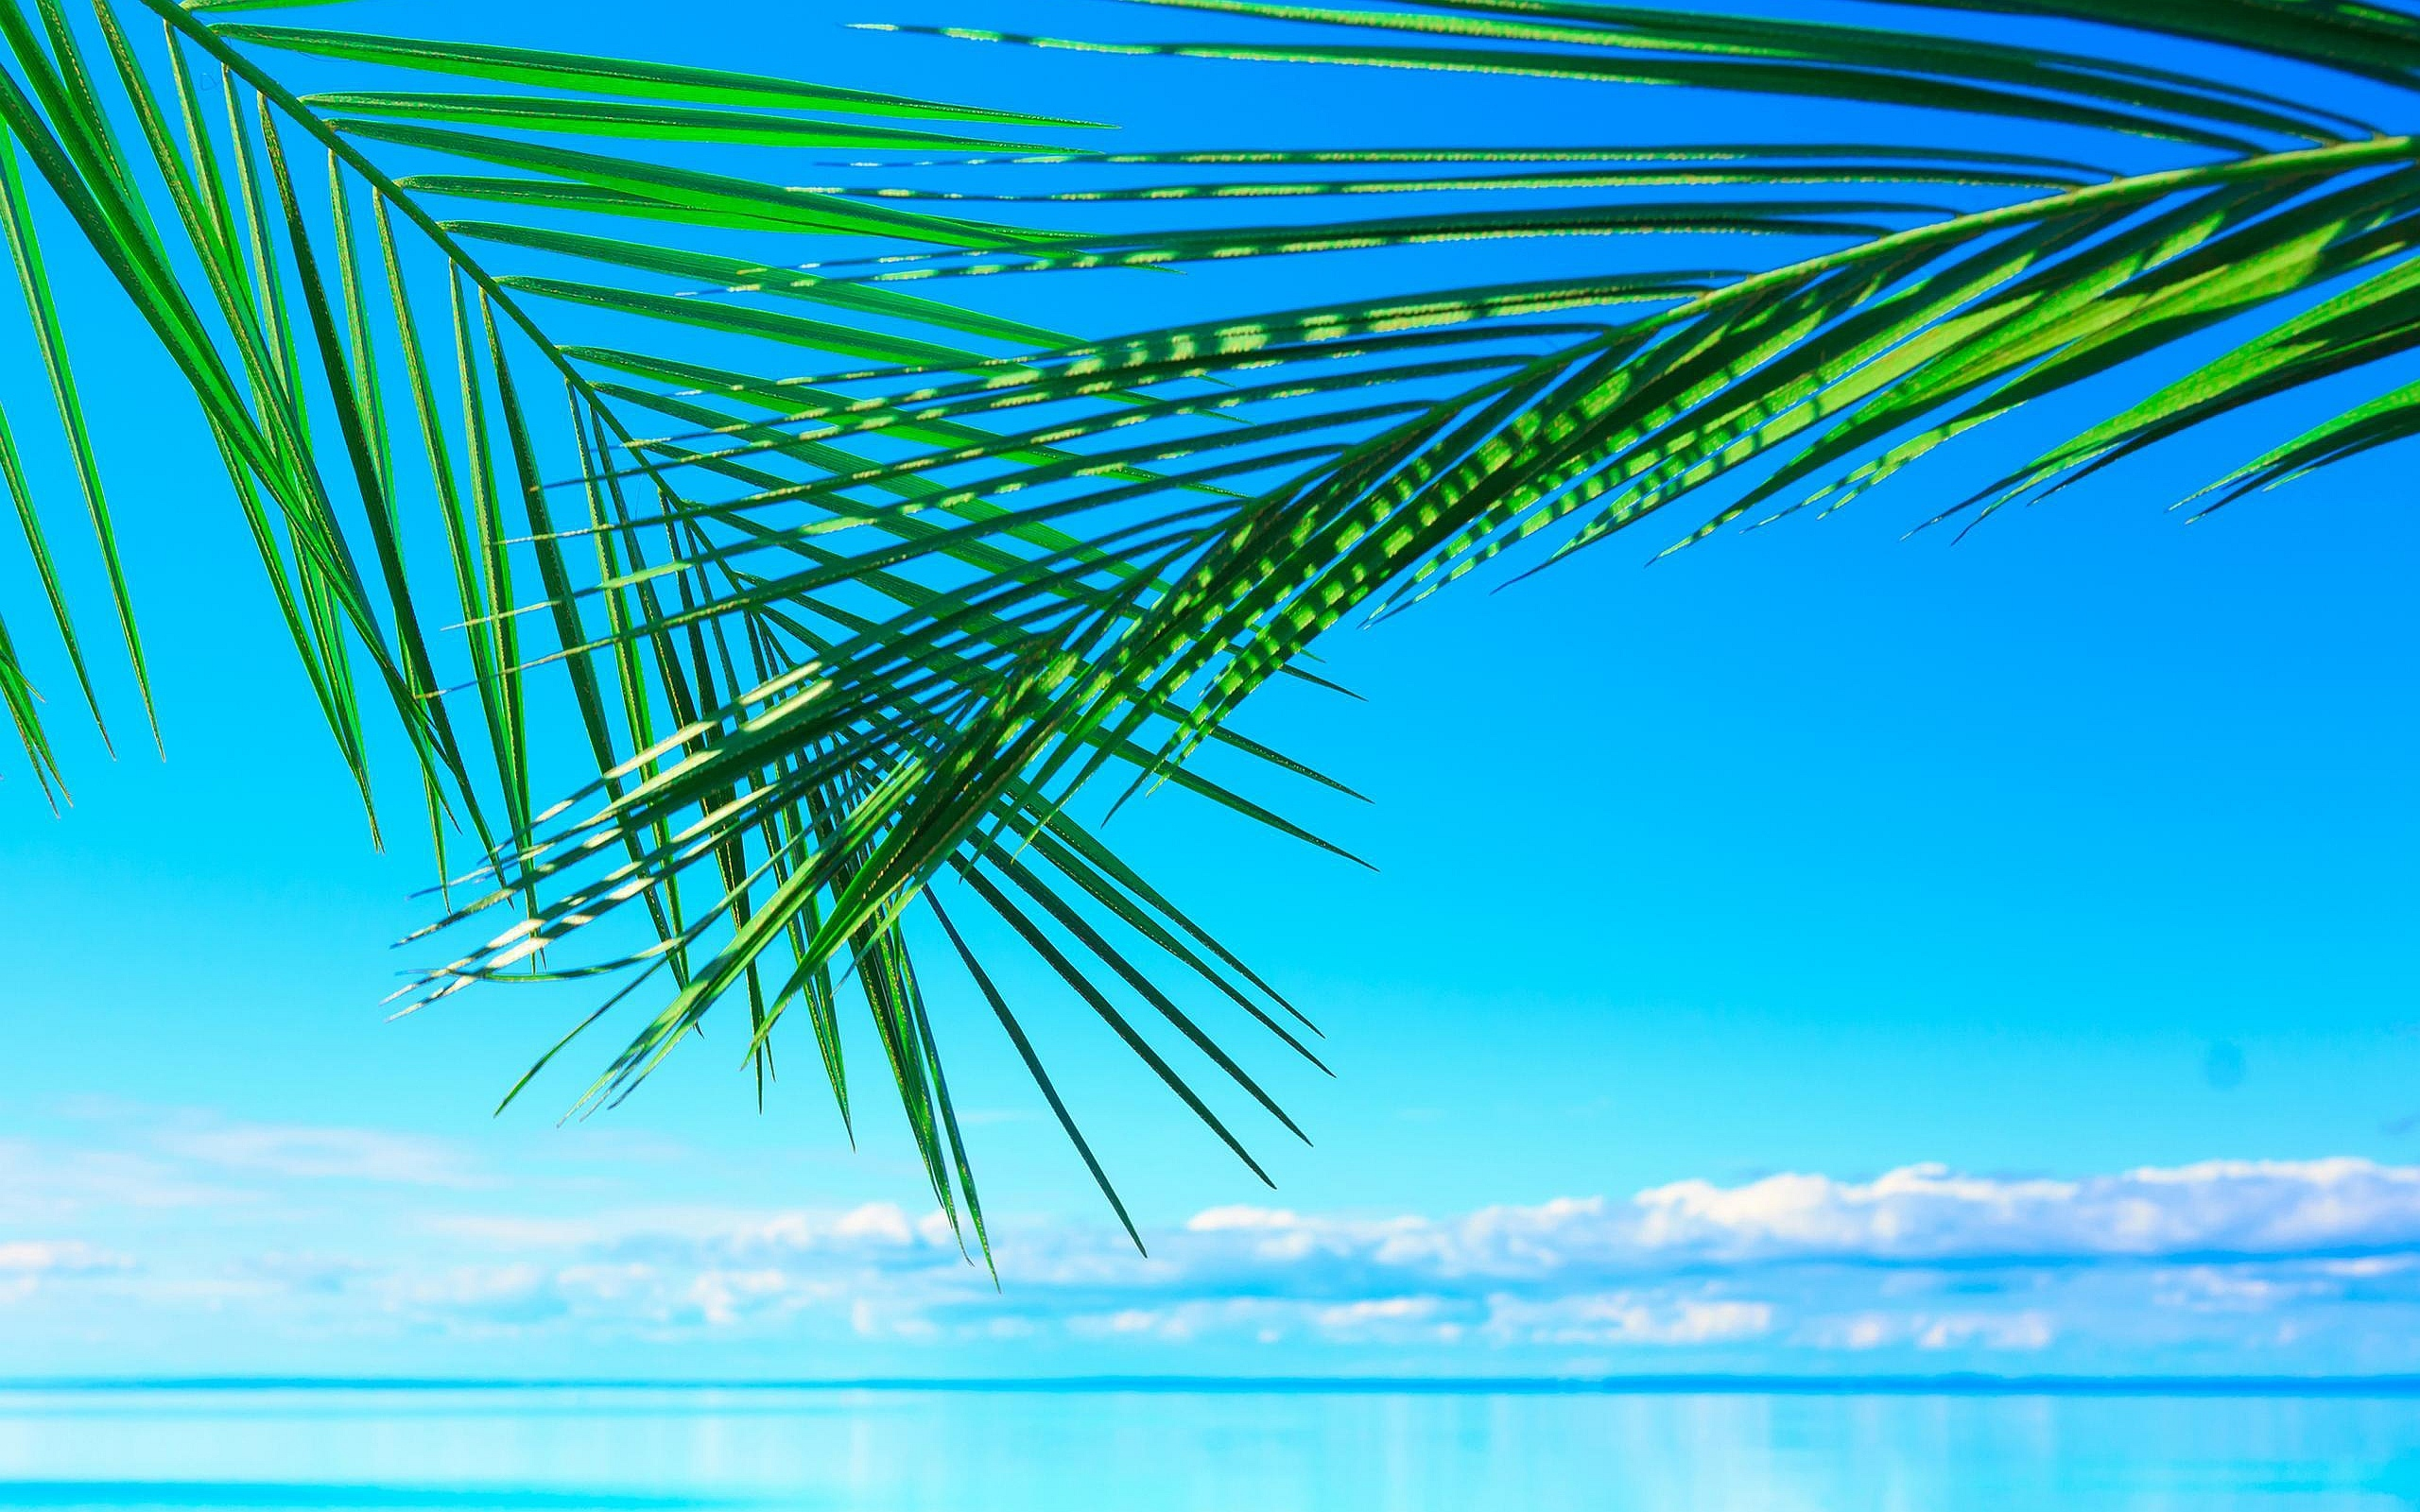 Green palm leaves over the blue water   HD summer wallpaper 2560x1600